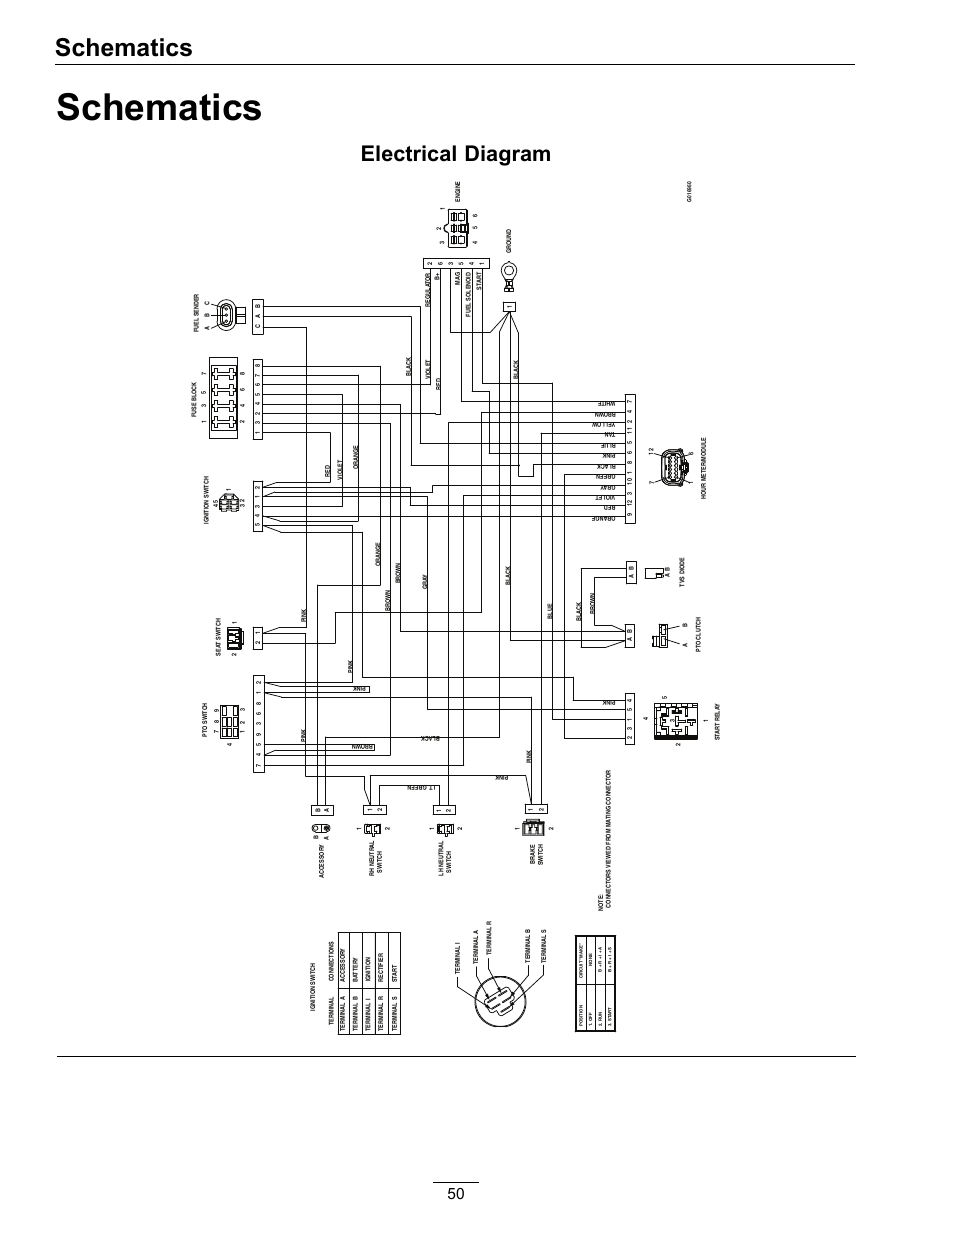 Dimarzio Super Distortion Vintage Single Wire Wiring Diagram